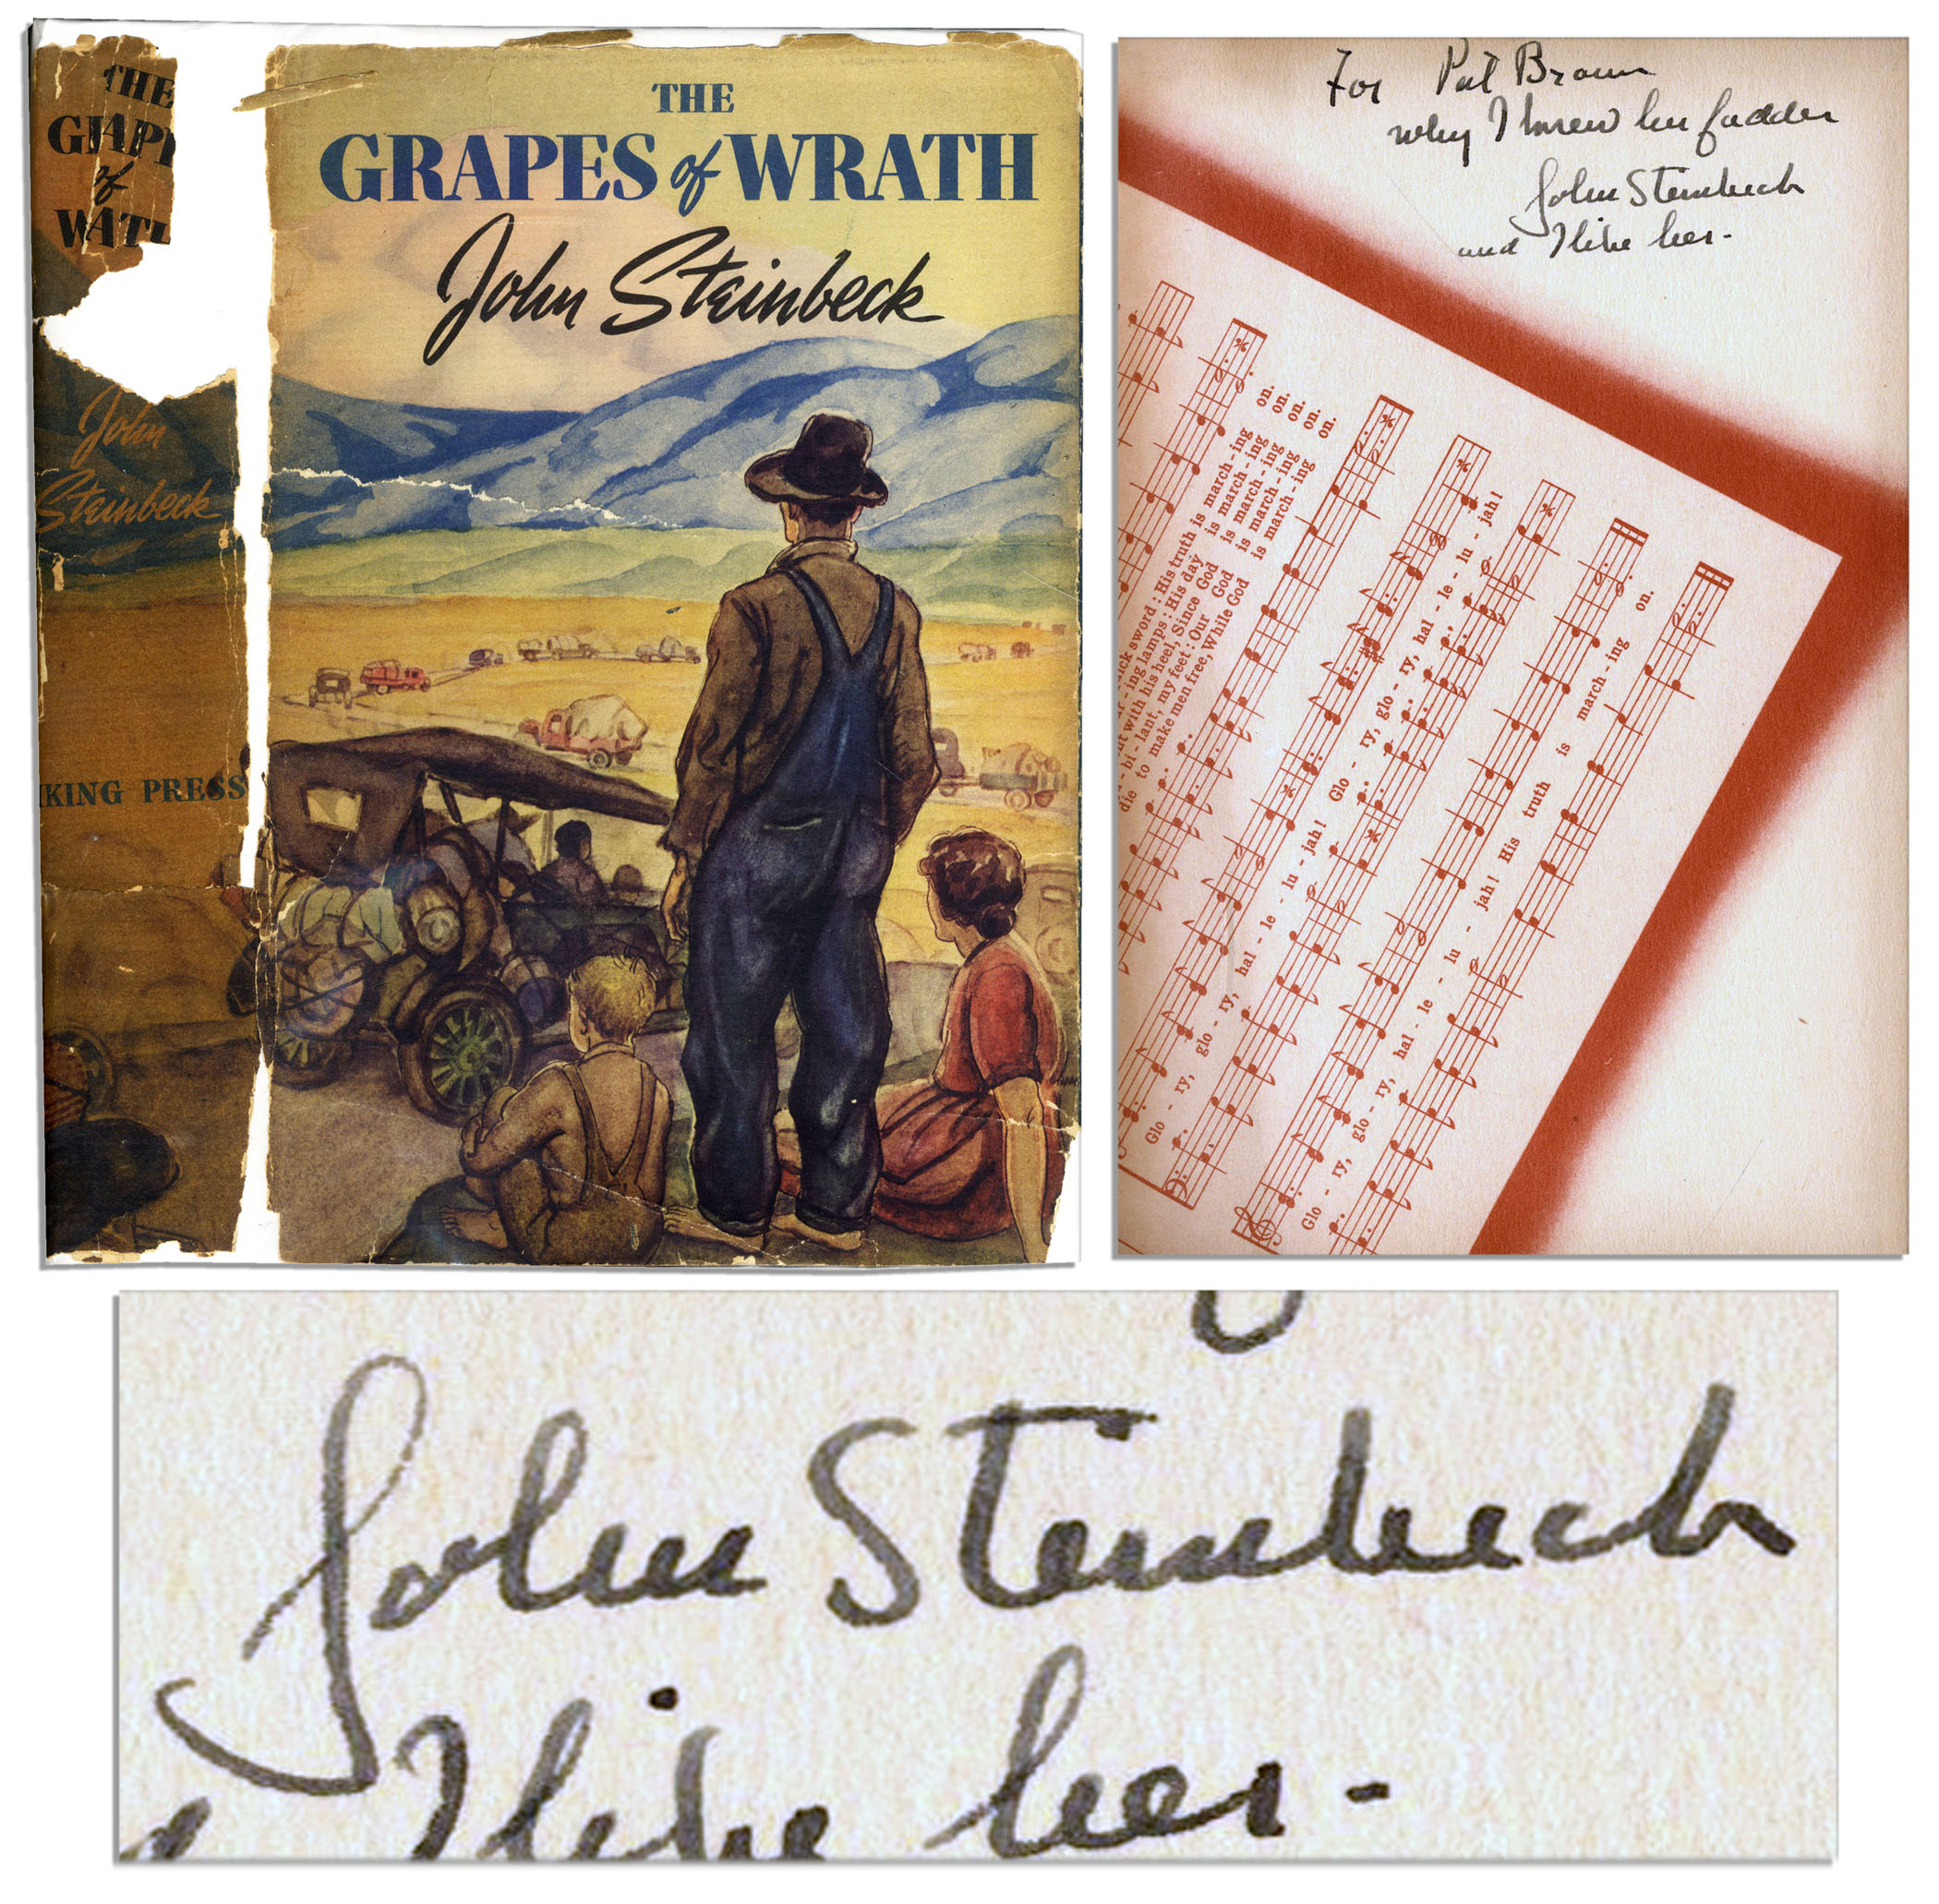 """an analysis of the epic story of the grapes of wrath by john steinbeck John steinbeck's the grapes of wrath (1939), the most illustrious """"protest"""" novel of the 1930s, was an epic tribute to the okies, those throwbacks to america's 19th-century pioneers, now run off their farms by the banks, the dust bowl, and the mechanization of modern agriculture, clattering in."""